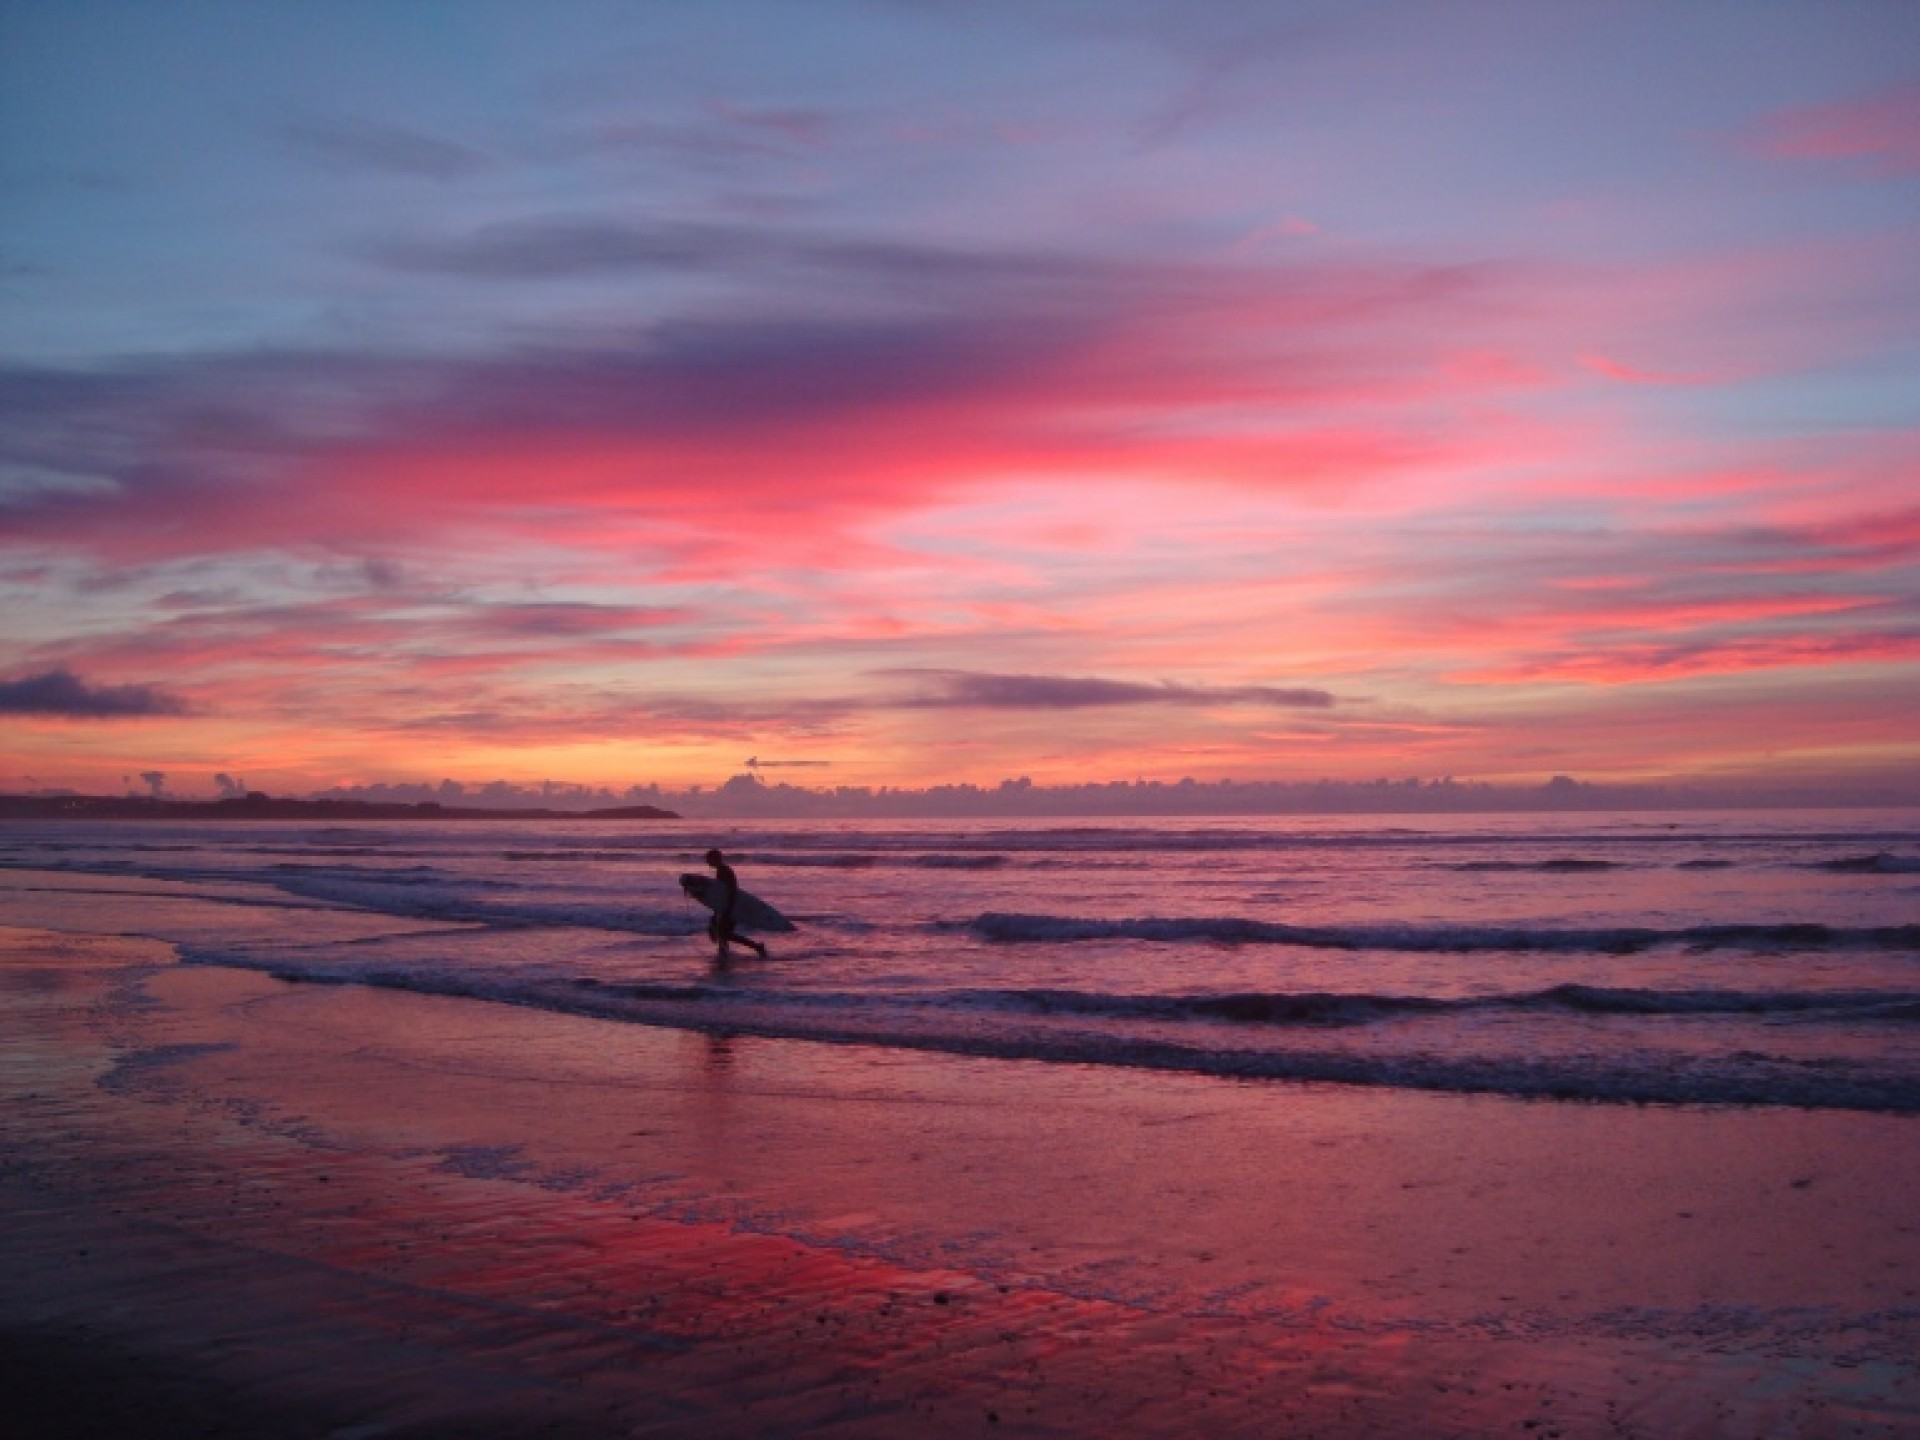 Ross collings's photo of Watergate Bay